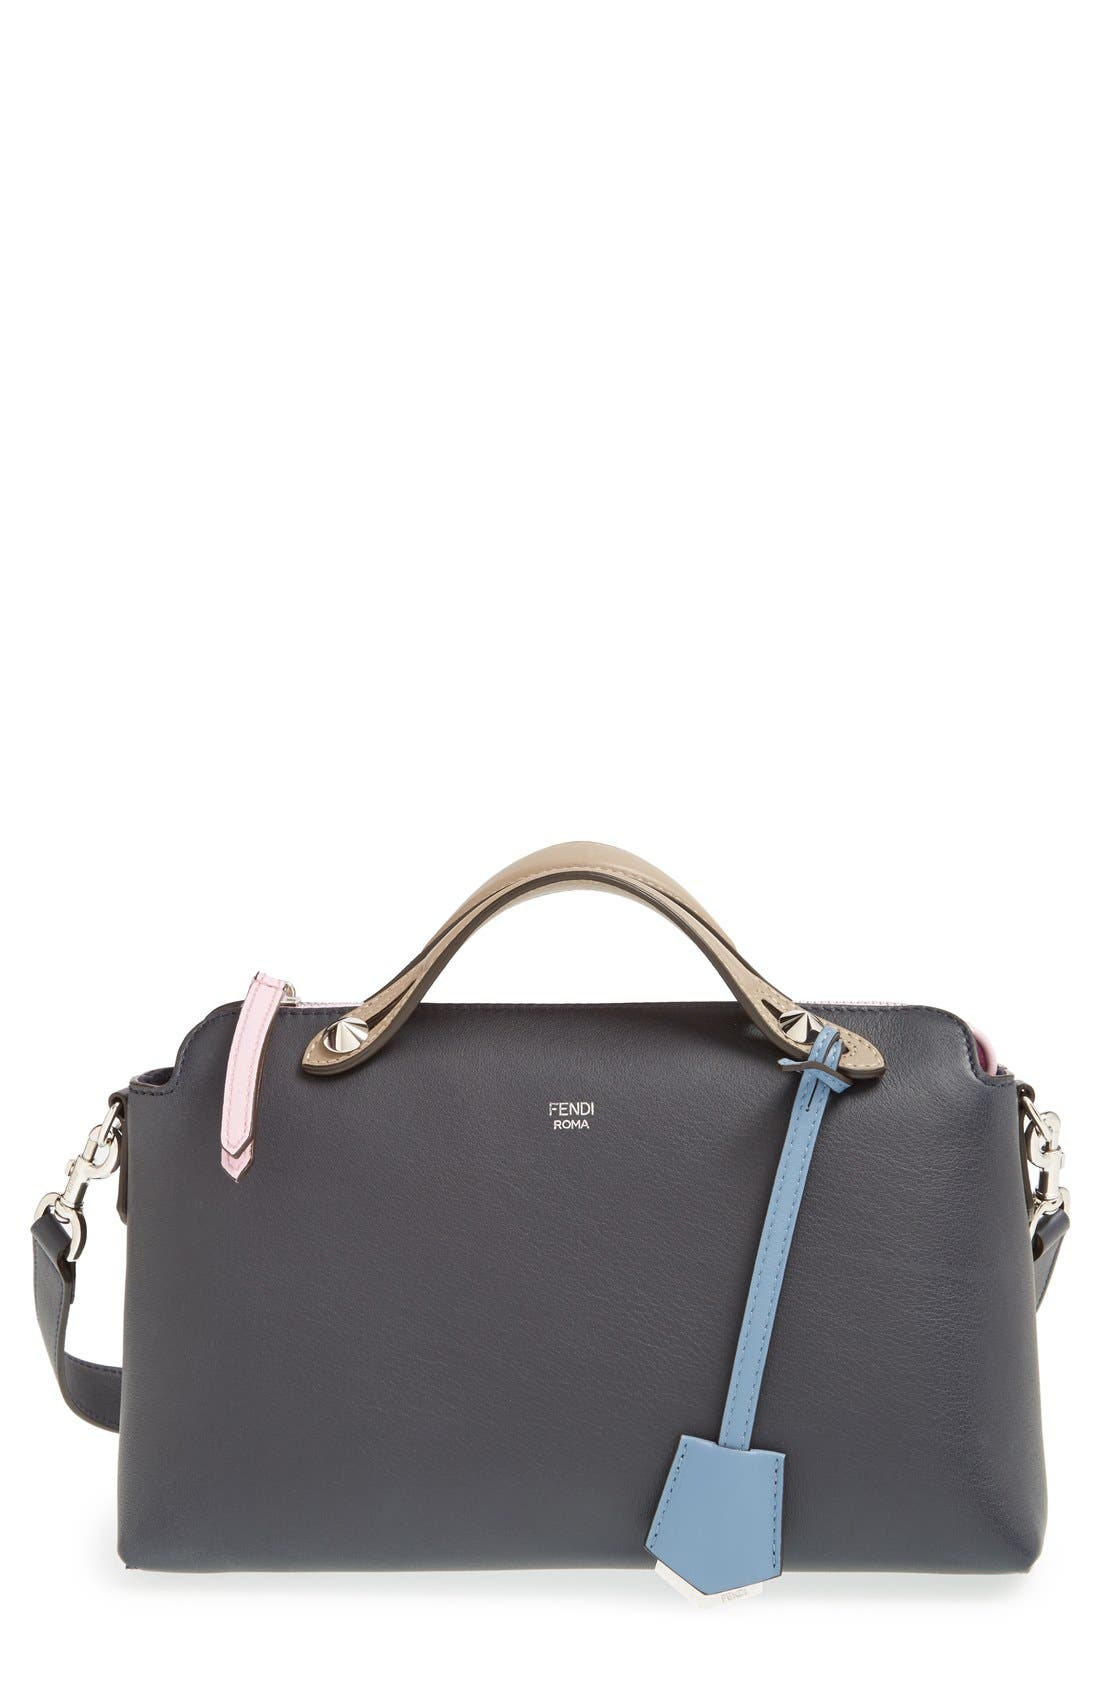 Main Image - Fendi 'Small By the Way' Colorblock Leather Shoulder Bag